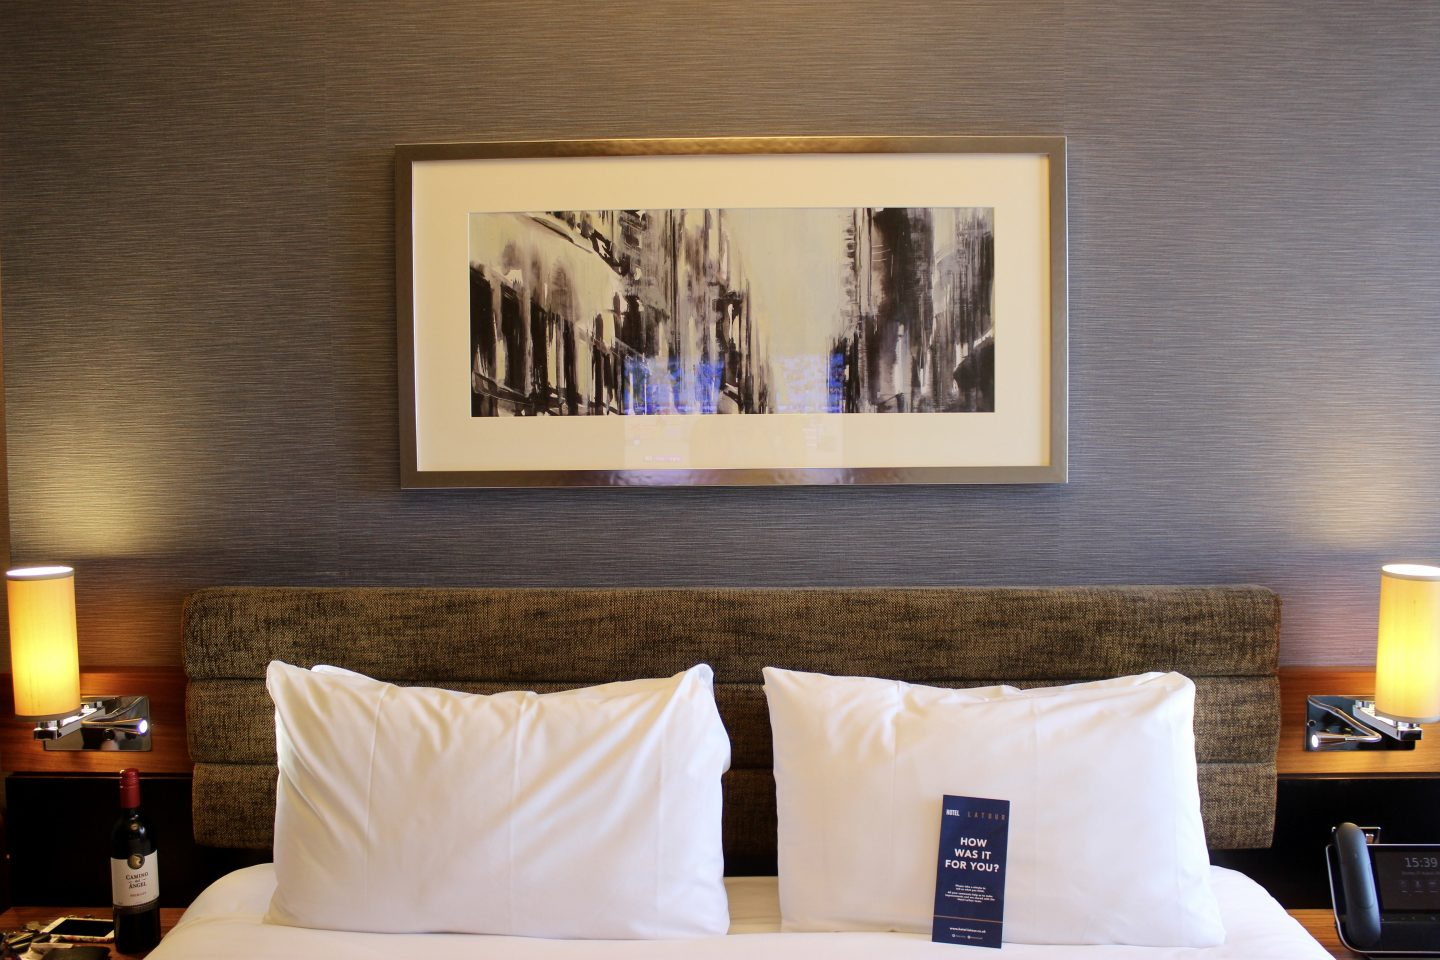 Hotel La Tour Birmingham | Review